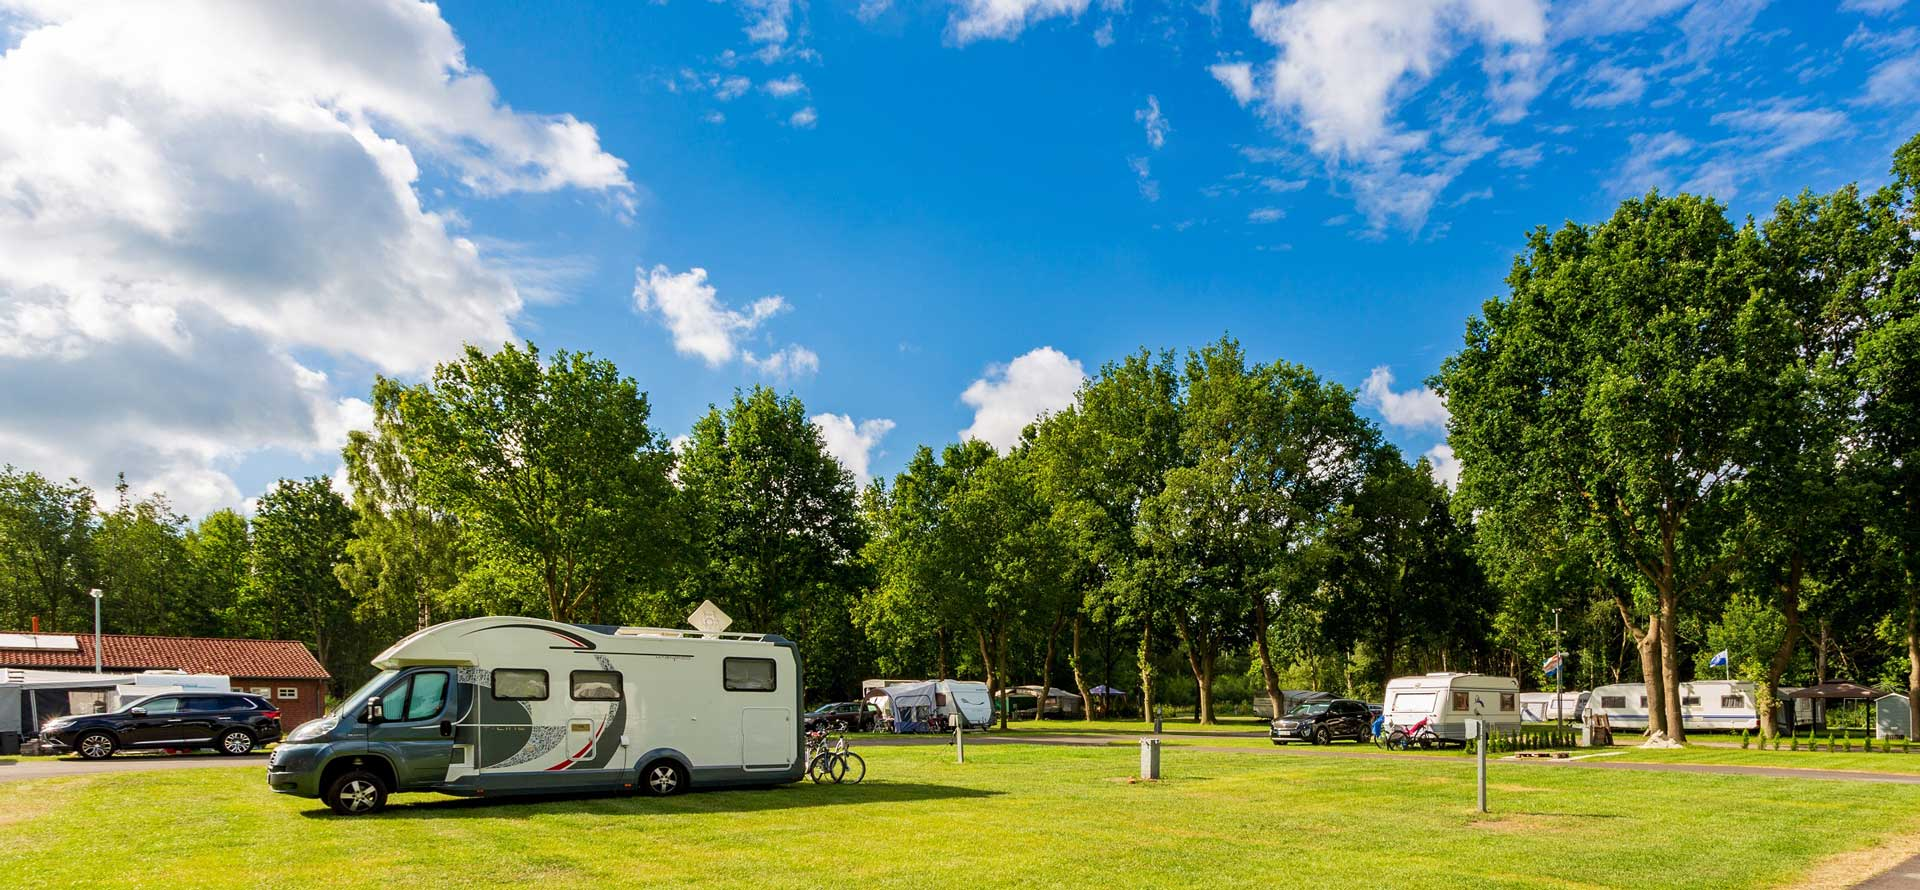 Camping in Papenburg